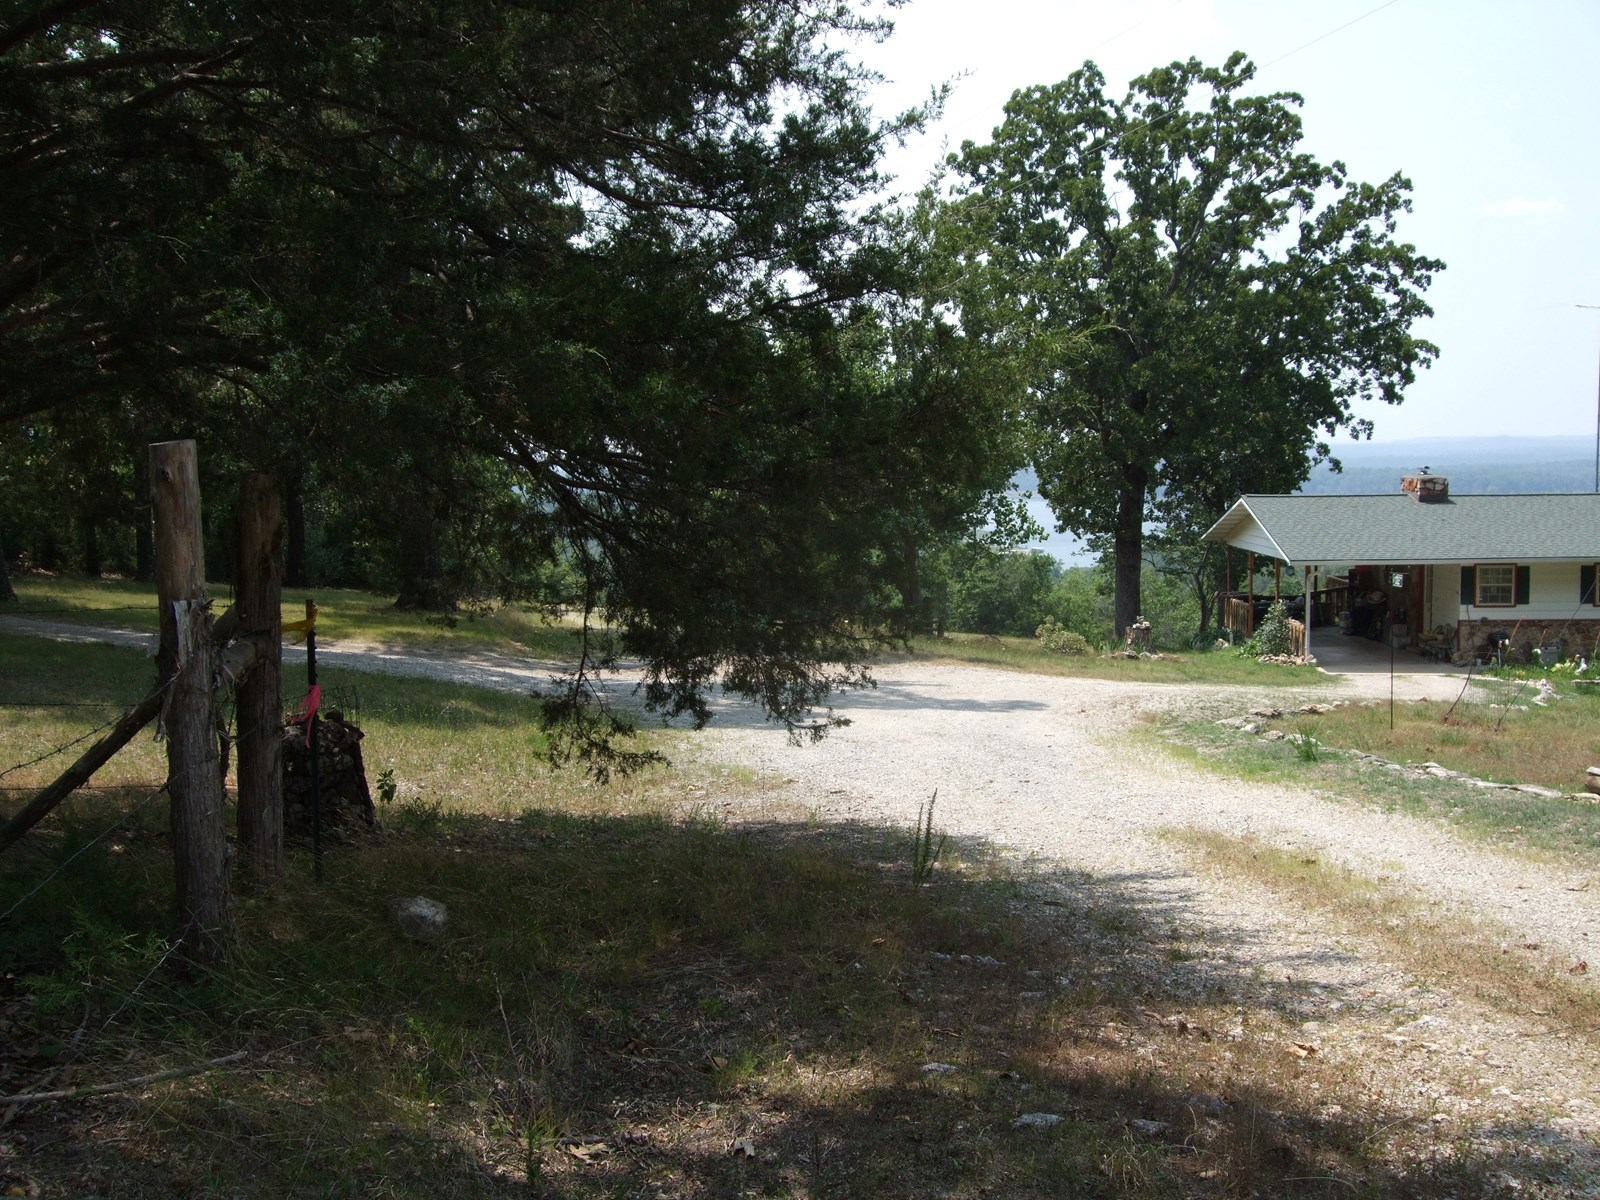 LAND FOR SALE NEAR BULL SHOALS LAKE AT OAKLAND, ARKANSAS!